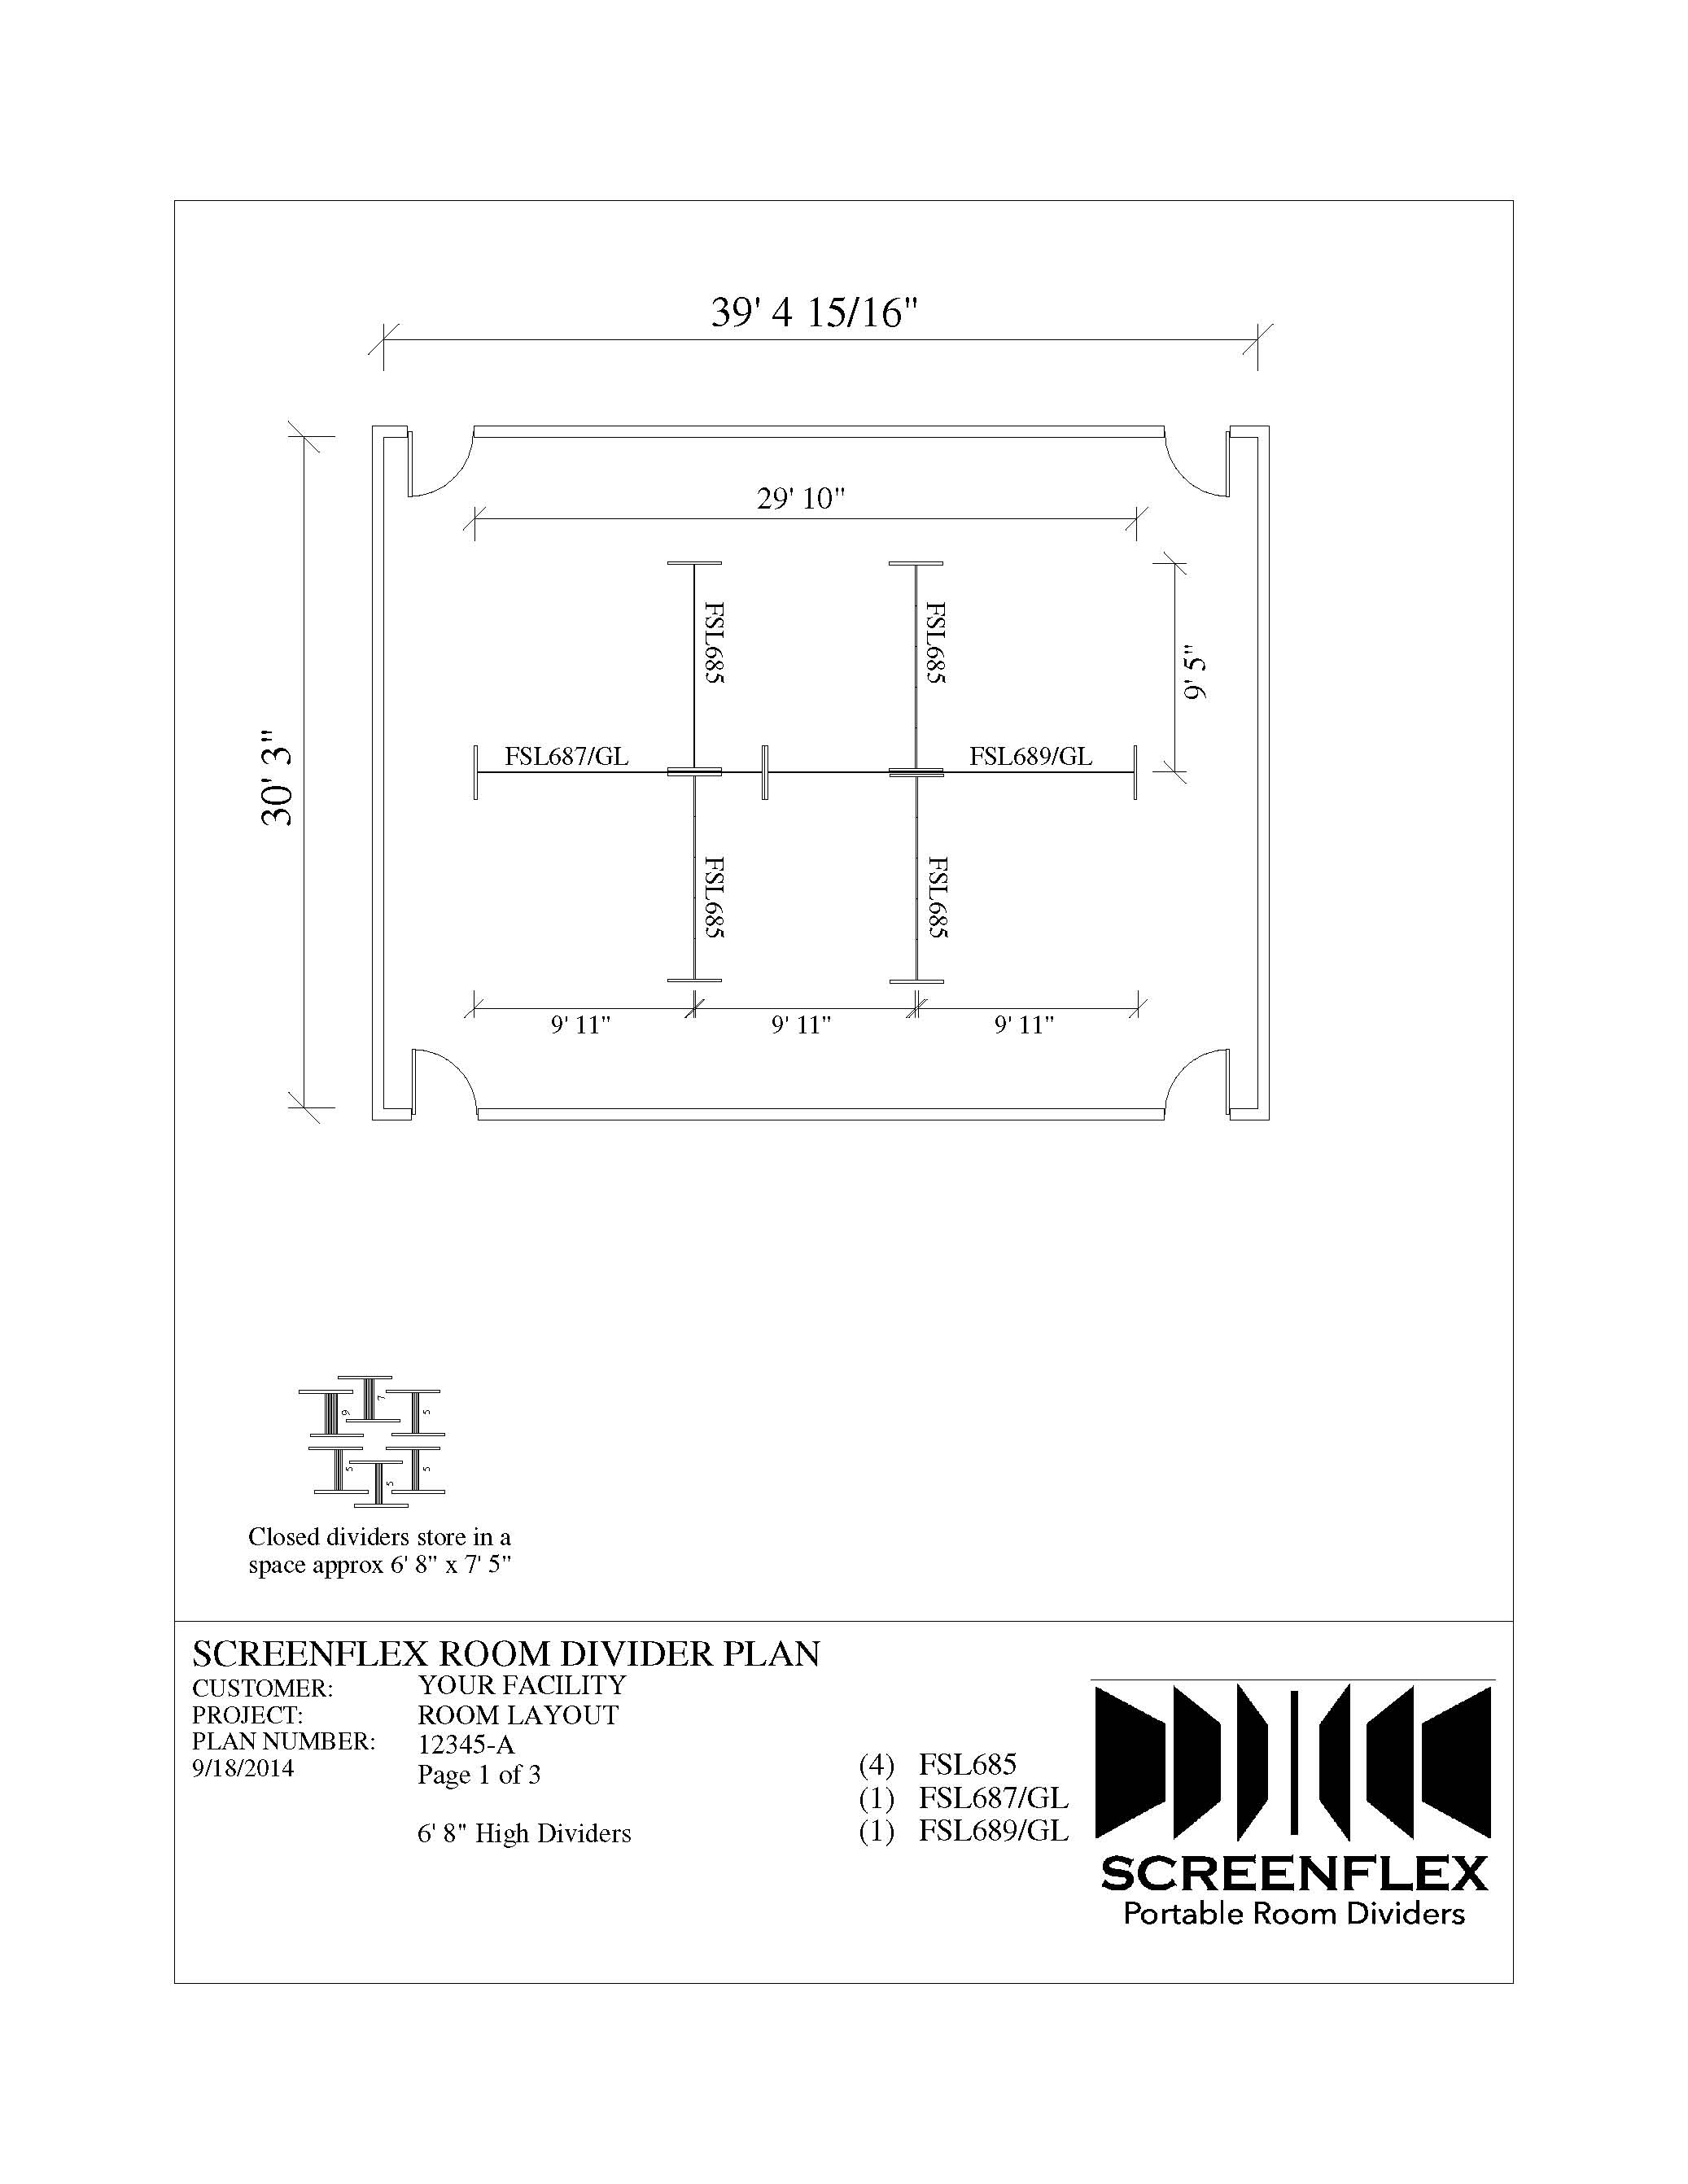 Page not found screenflex portable room iders - The Screenflex Planning Department Will Develop 2d 2d Floor Plan Layout